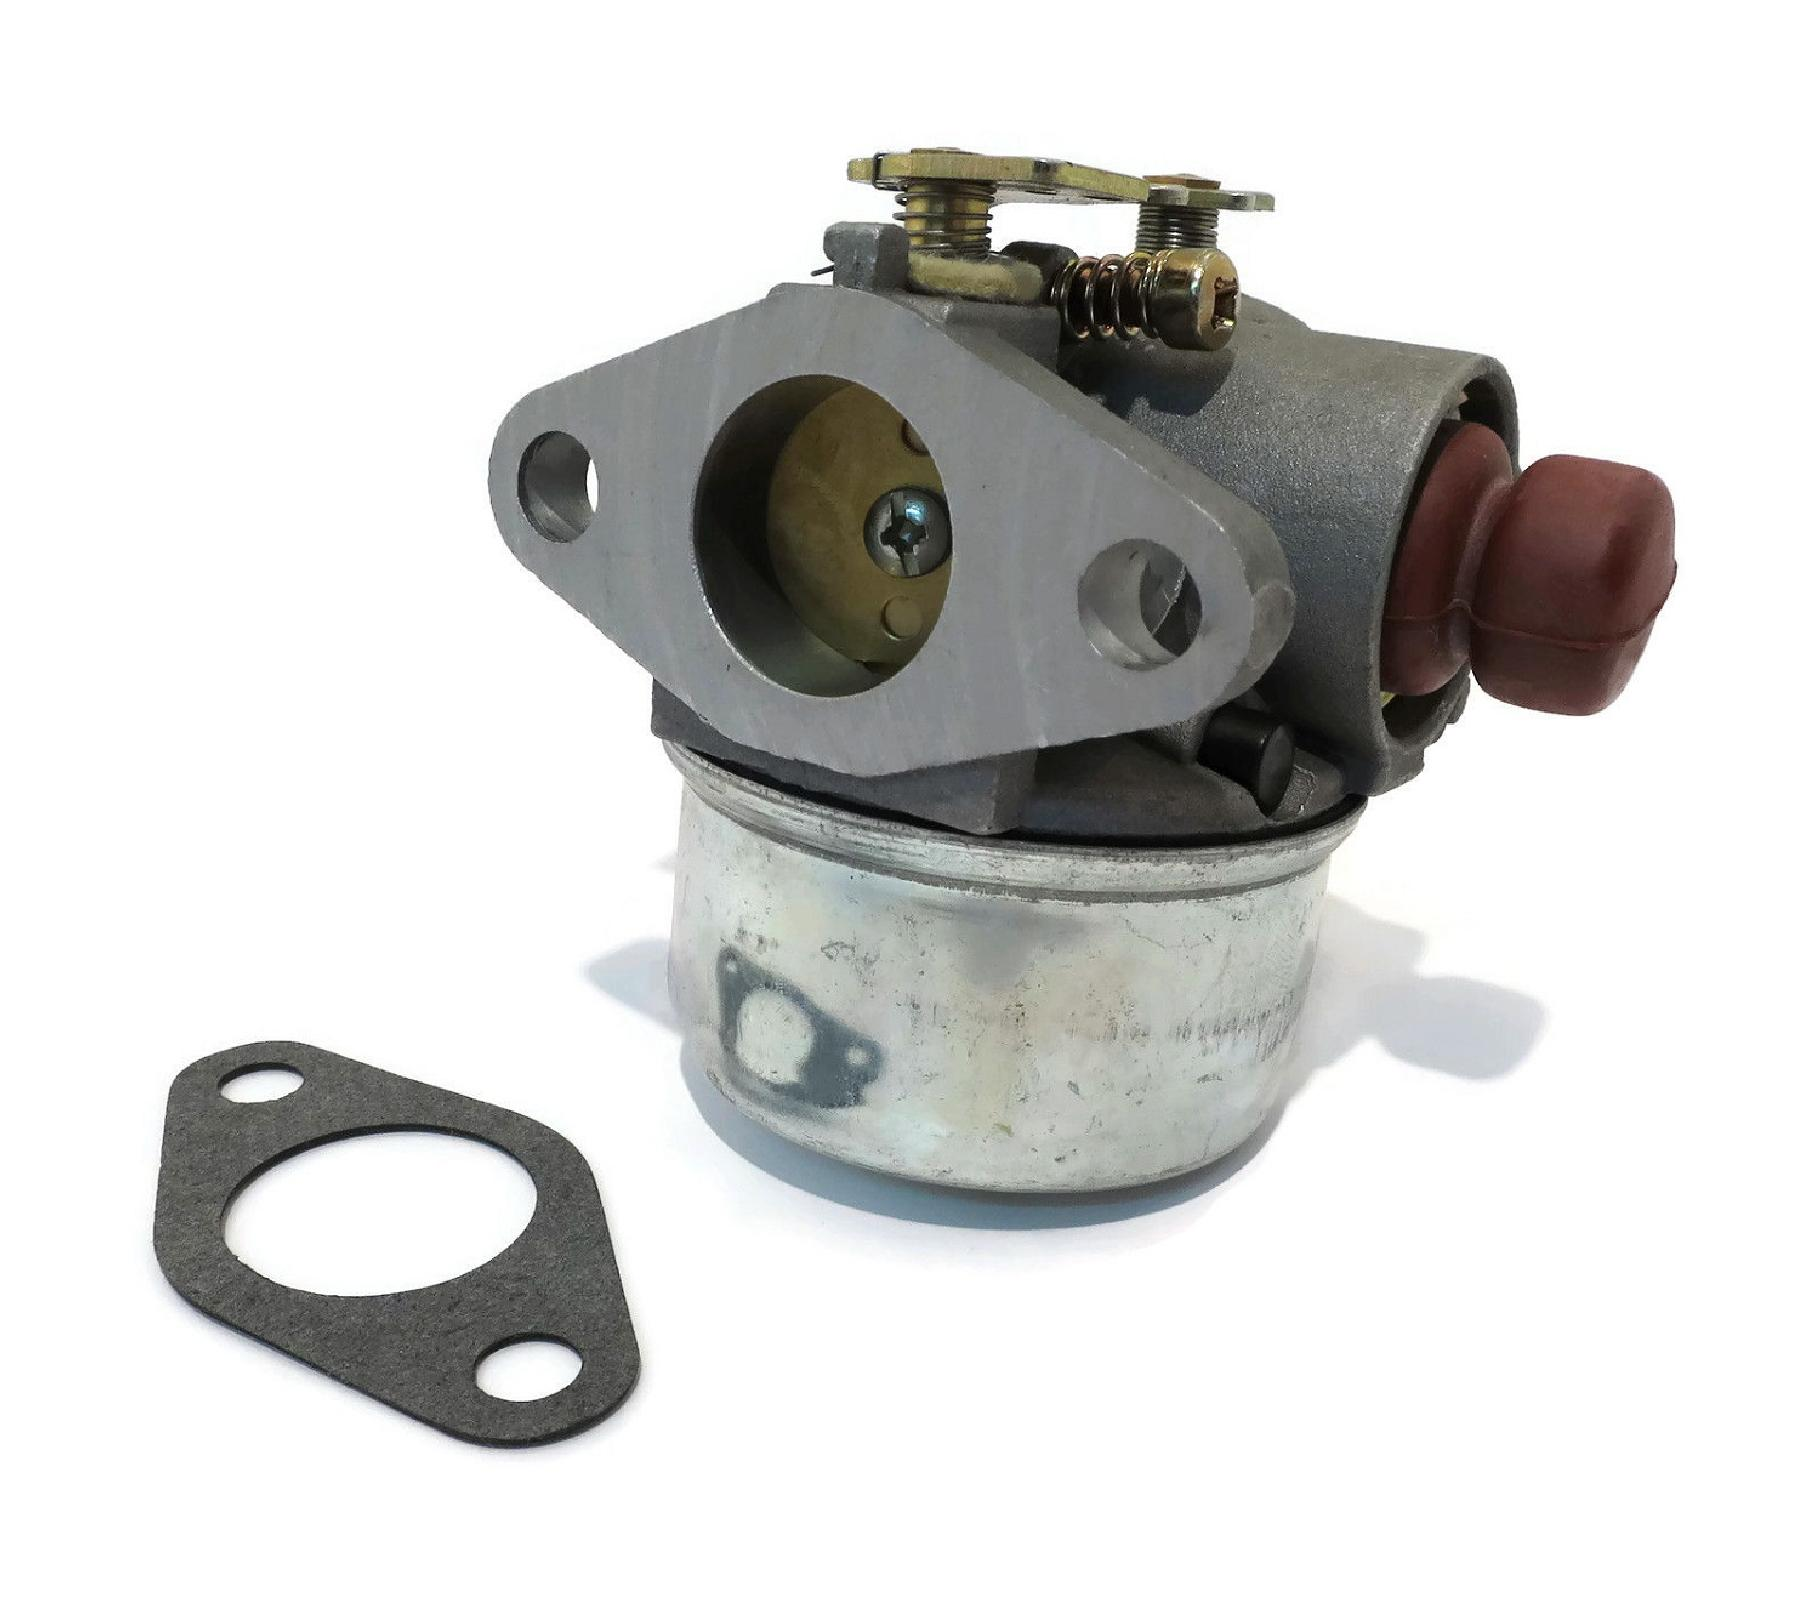 Mower Motor Parts : Carburetor for tecumseh lev lawn mower engine